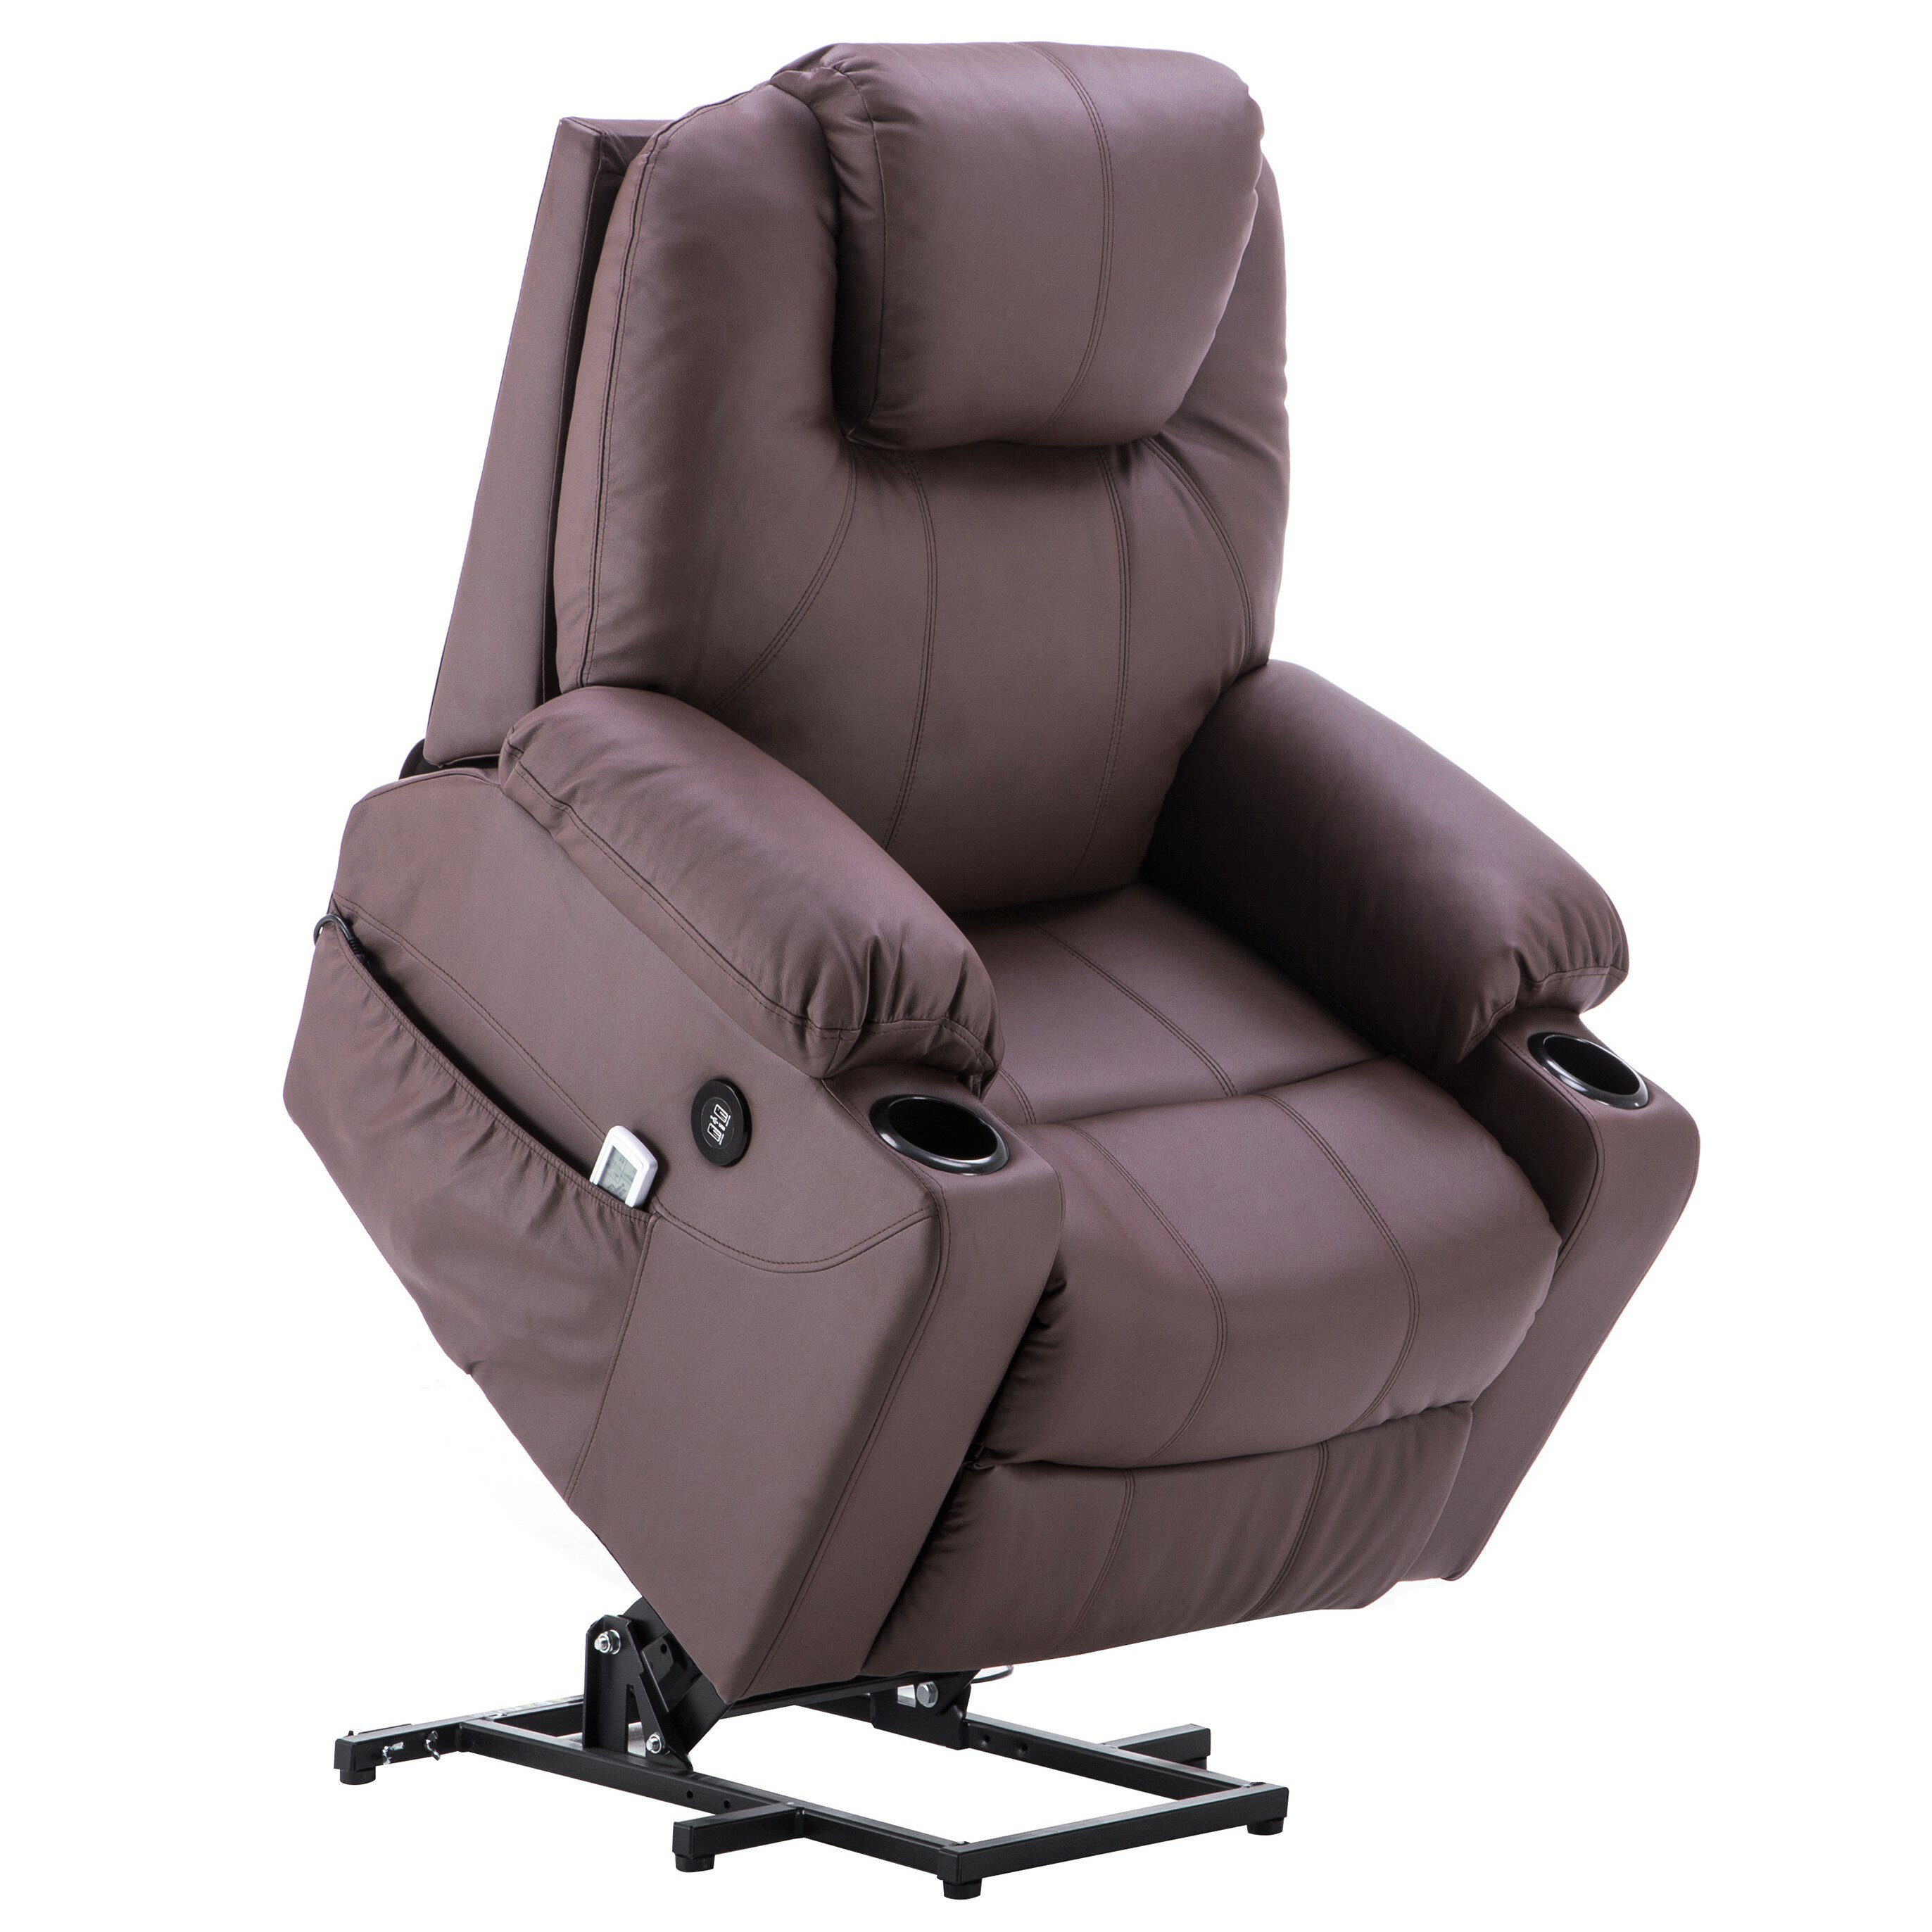 mcombo mcombo electric power lift recliner massage sofa heated rh rakuten com